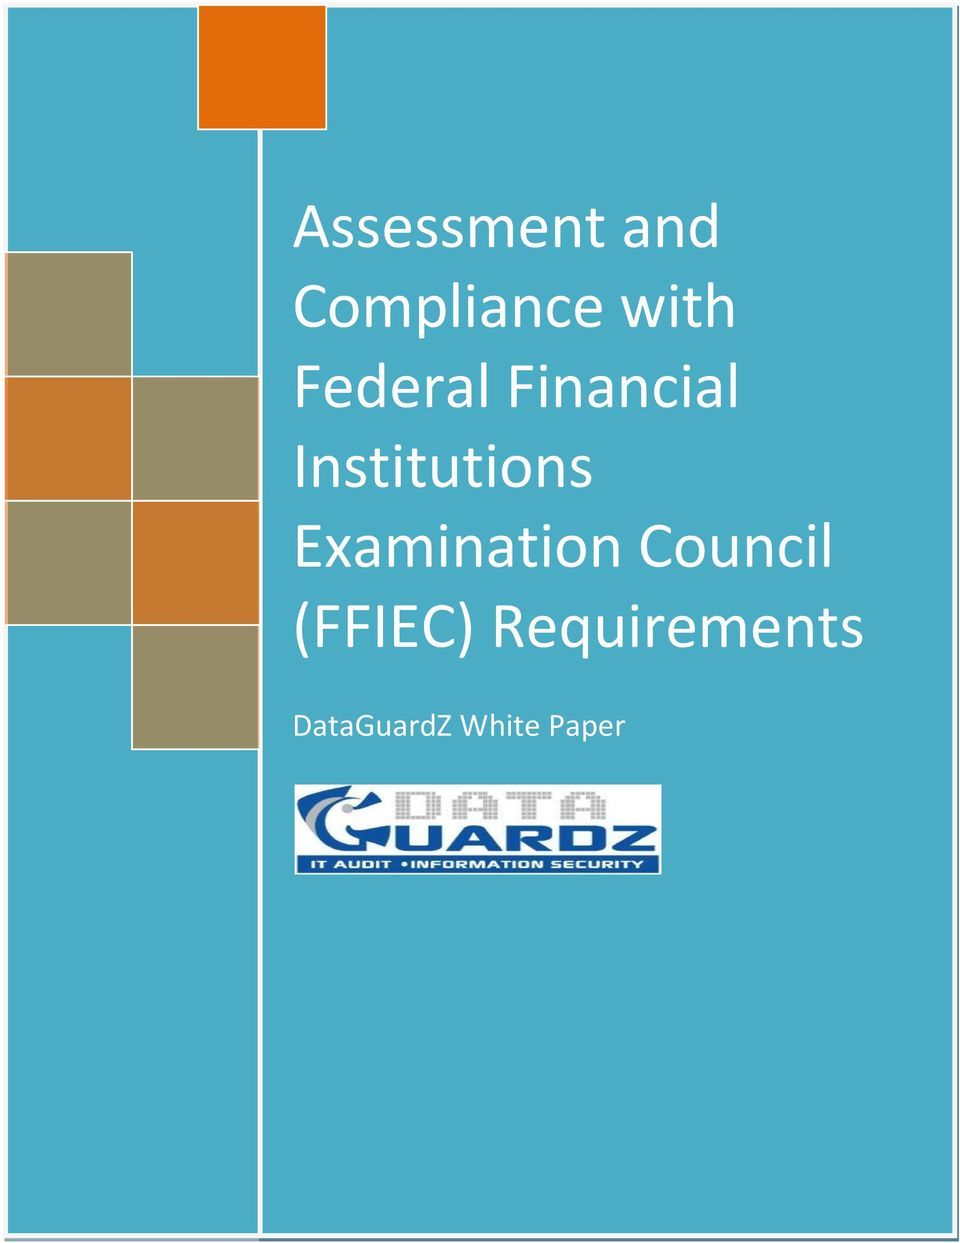 Examination Council (FFIEC) Requirements